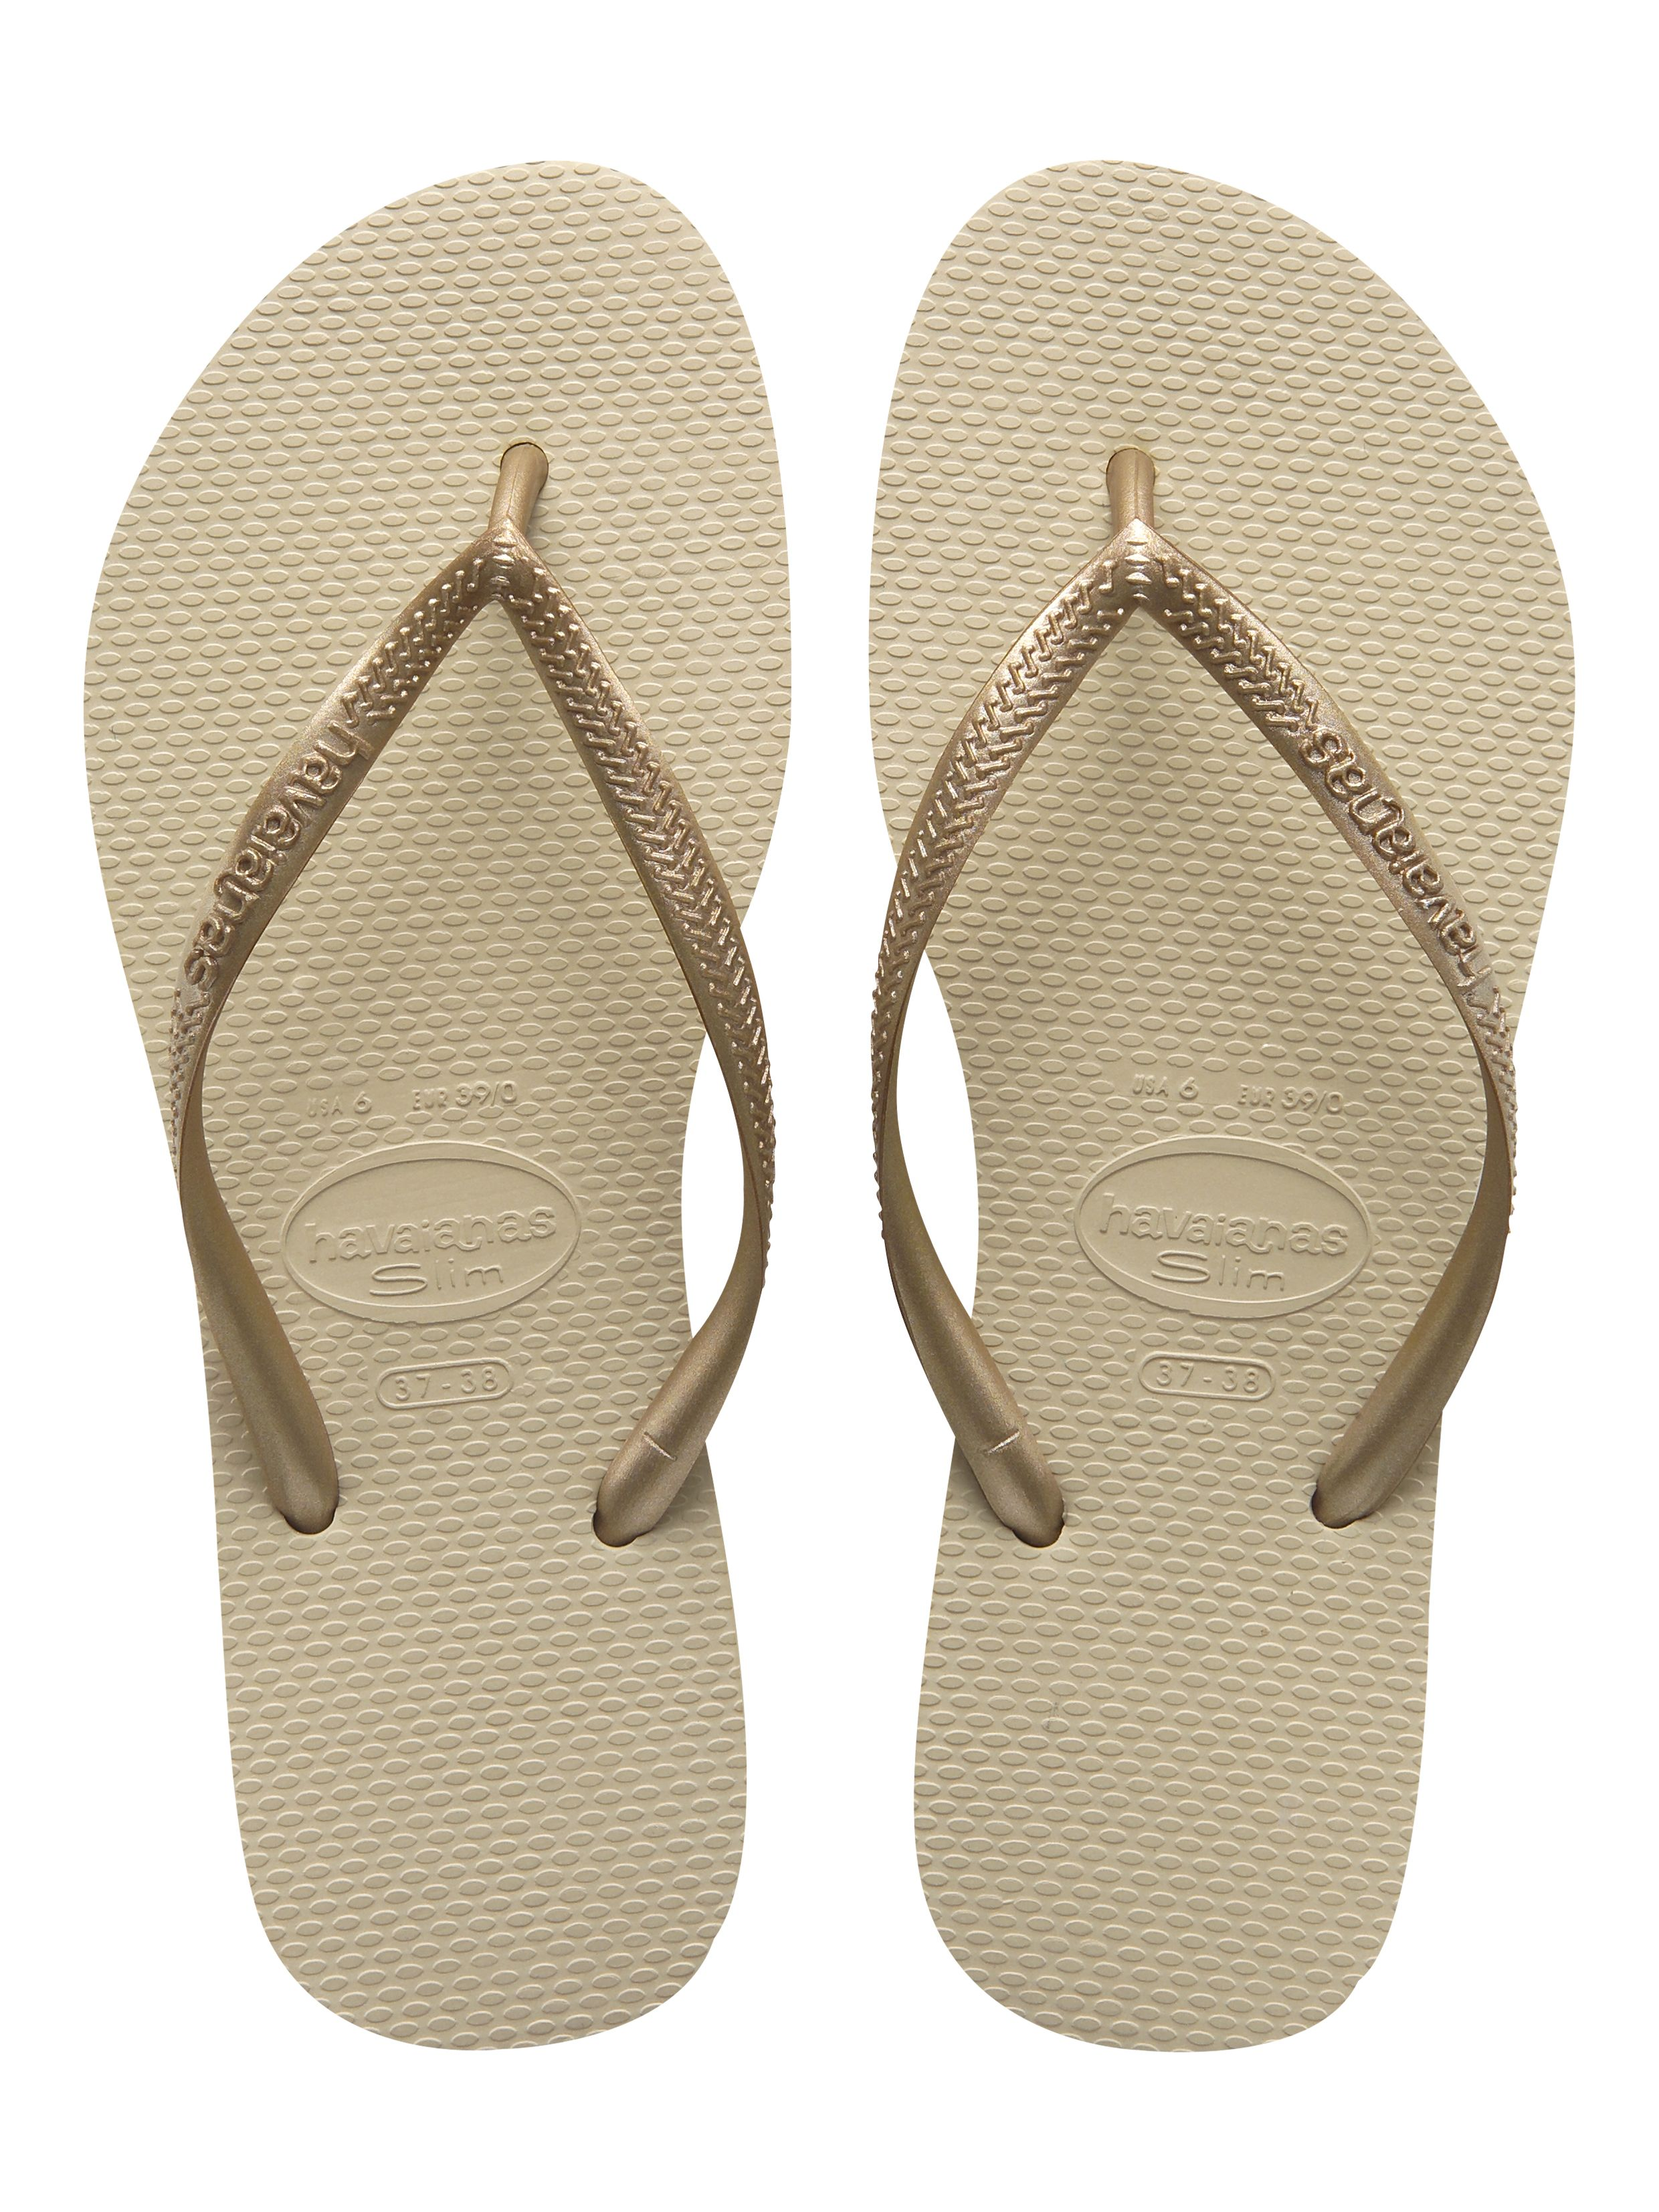 Havaianas Slim in Sand Grey/Light Golden